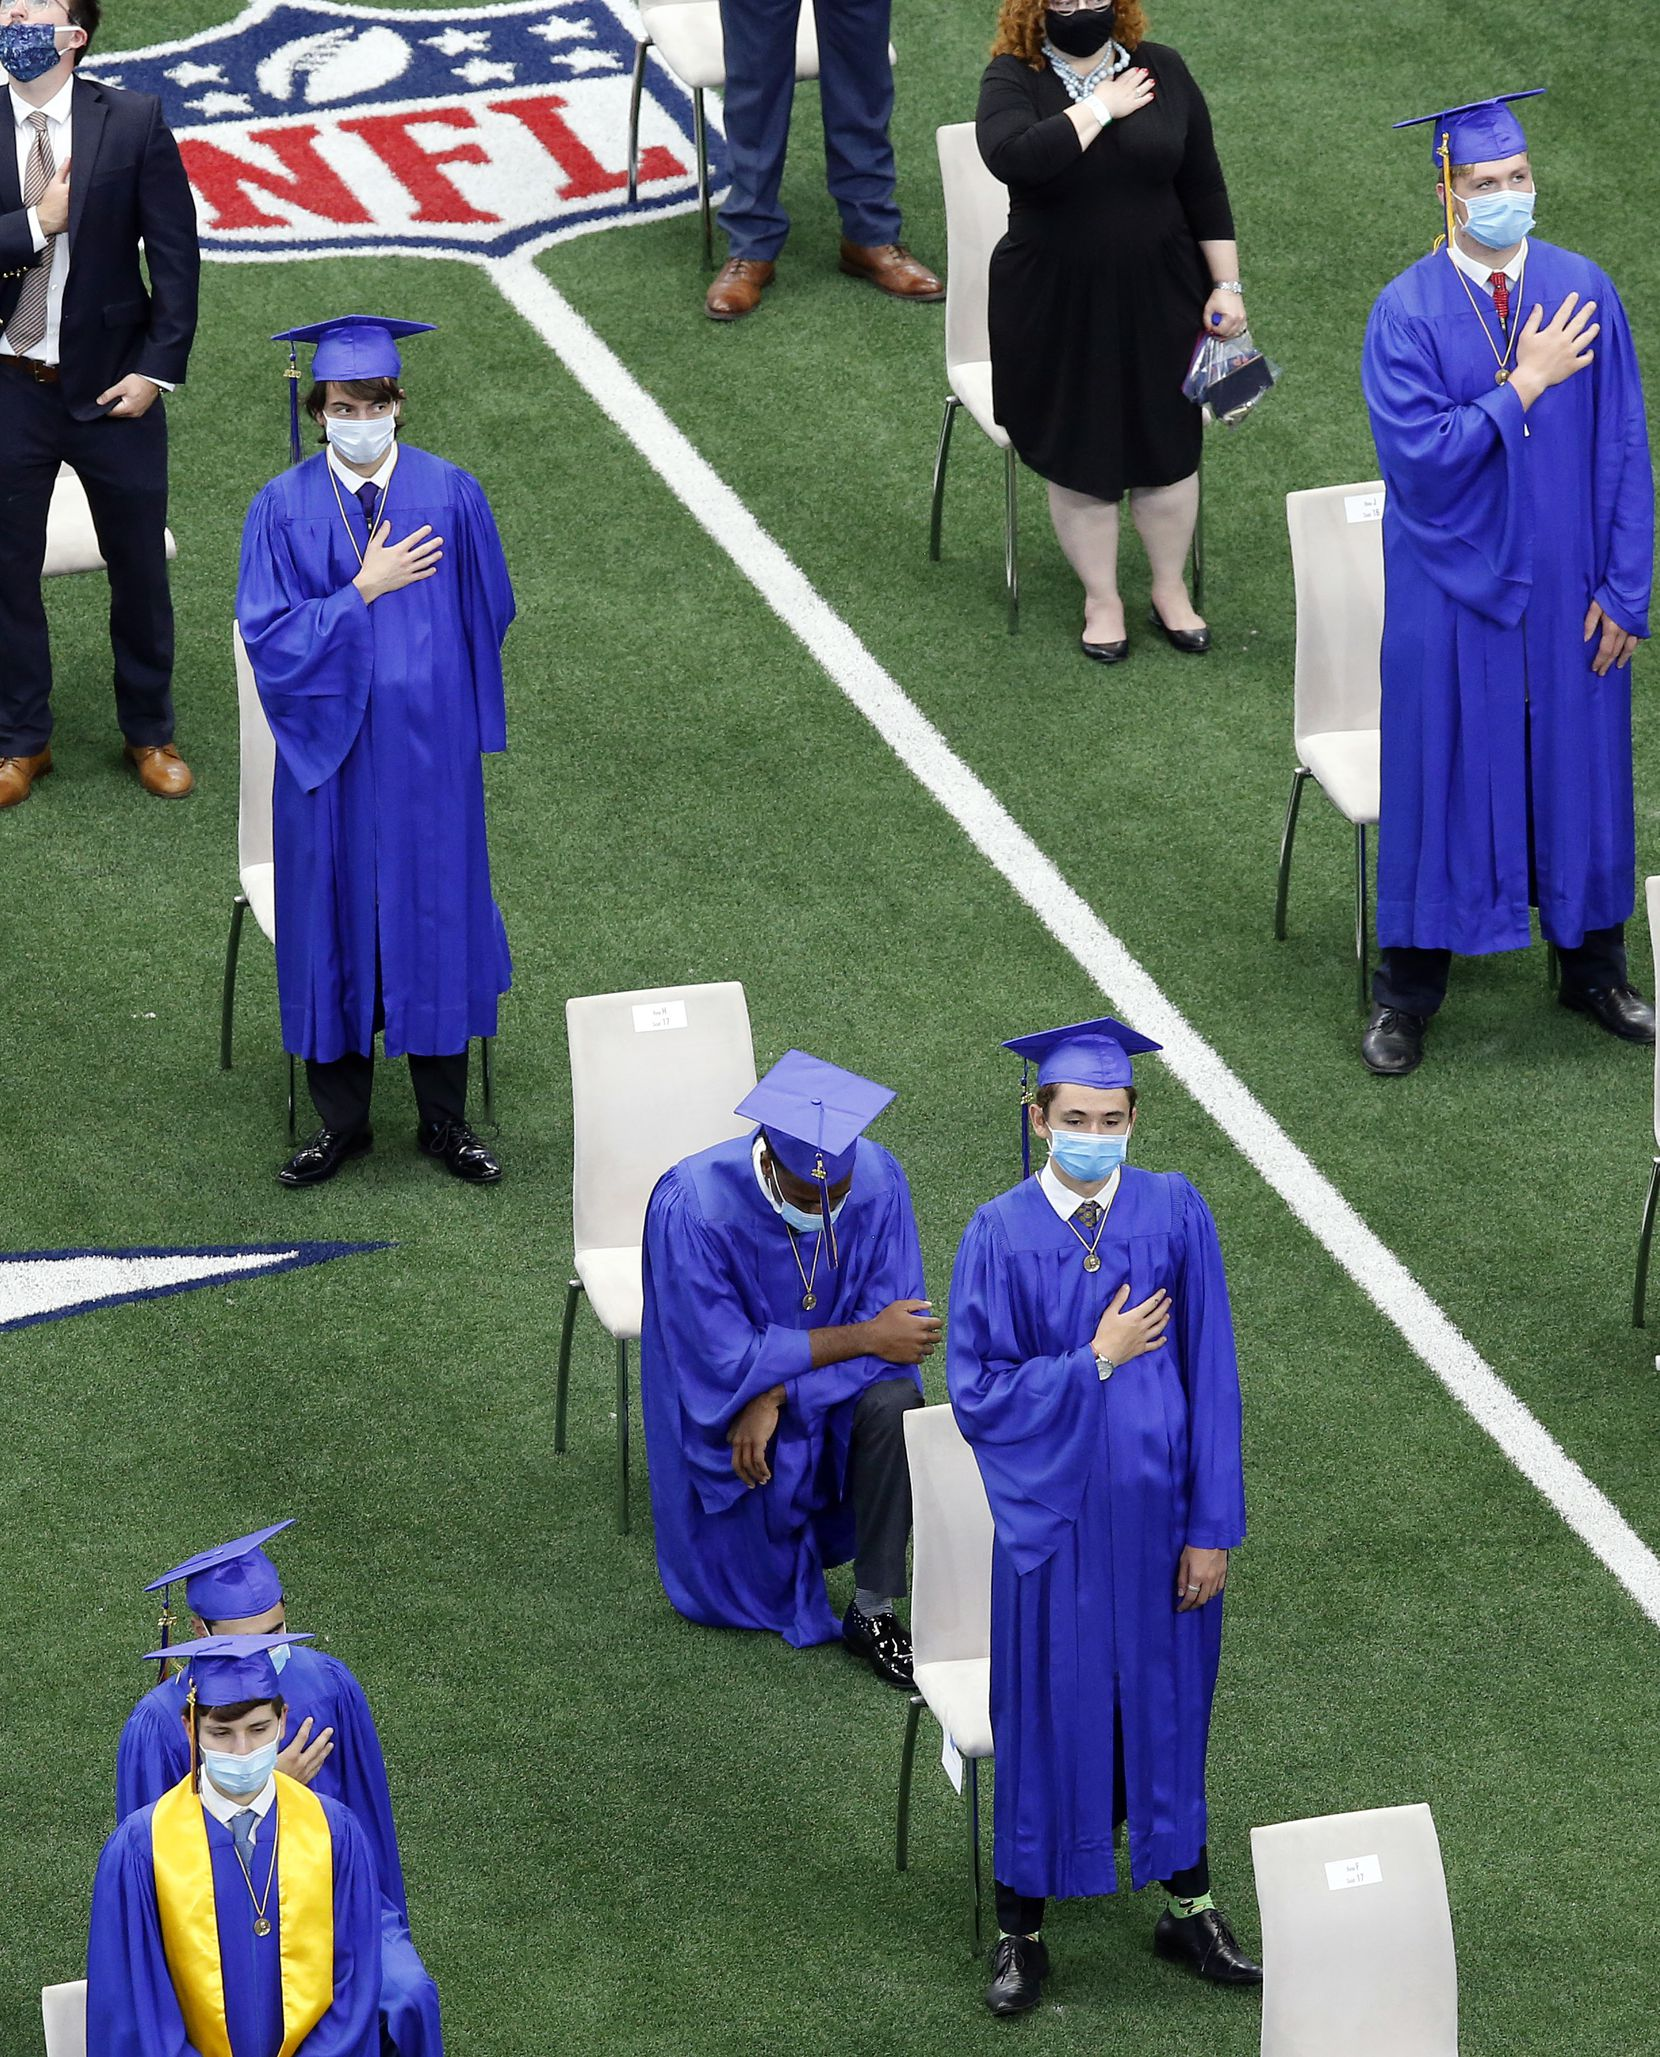 Jesuit College Preparatory School of Dallas graduate Emmitt 'EJ' Smith IV takes a knee during the national anthem at AT&T Stadium in Arlington, Texas, Friday, June 5, 2020. Because of the COVID-19 pandemic, the Dallas Cowboys hosted commencement ceremonies for local schools, including the Arlington ISD high schools. Over 1,100 people were in attendance, to see the 255 graduates get their diplomas.